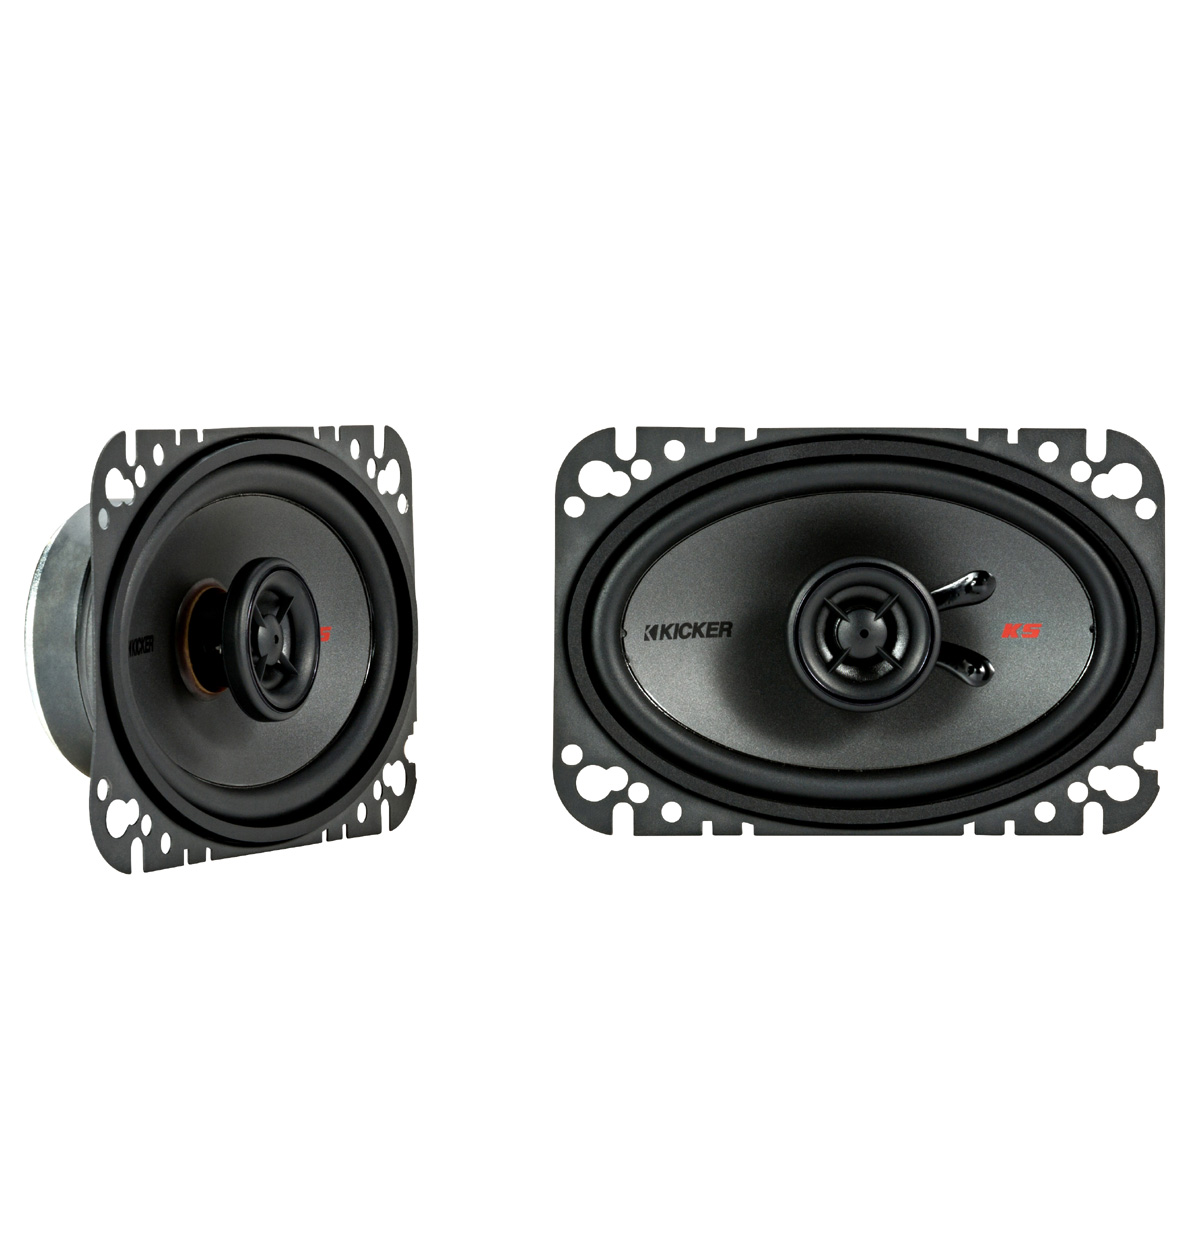 "KICKER 44KSC4604 4x6"" (100x160mm) Coax Spkrs w/.5""(13mm) tweeters, 4ohm, RoHS Compliant"